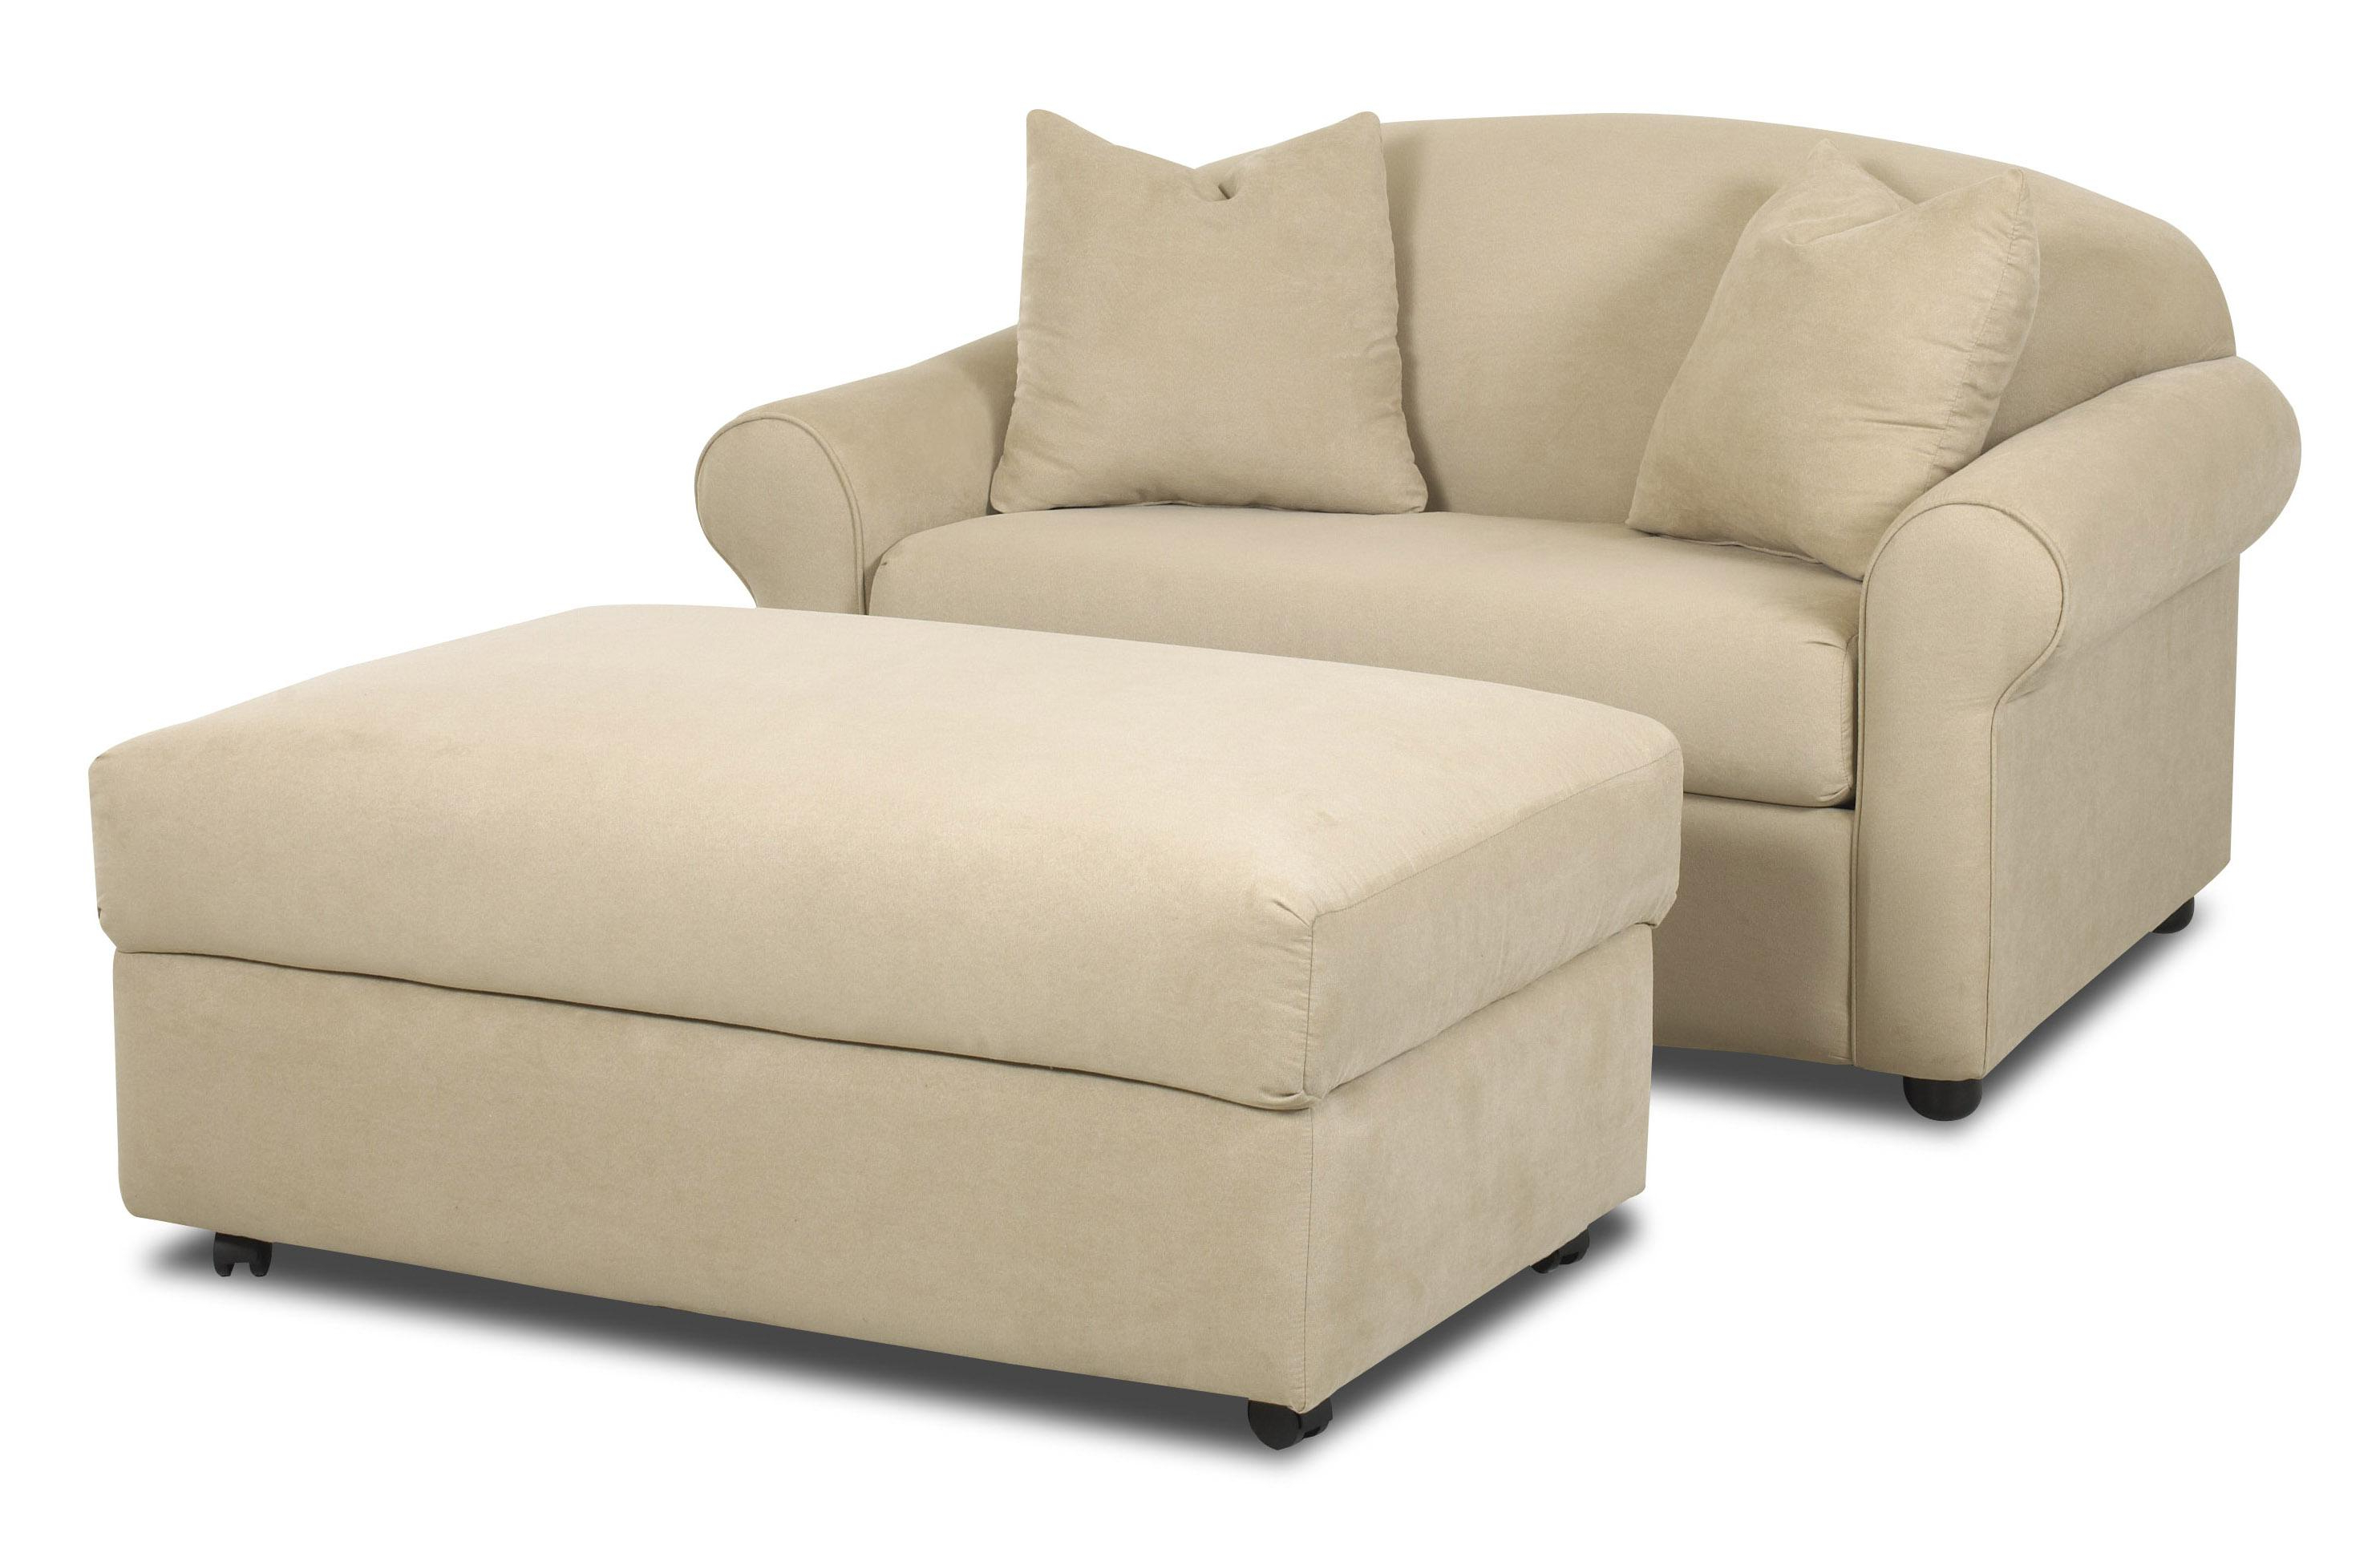 Klaussner Possibilities Chair Sleeper And Storage Ottoman Set Throughout Popular Sofa Chair With Ottoman (View 2 of 20)